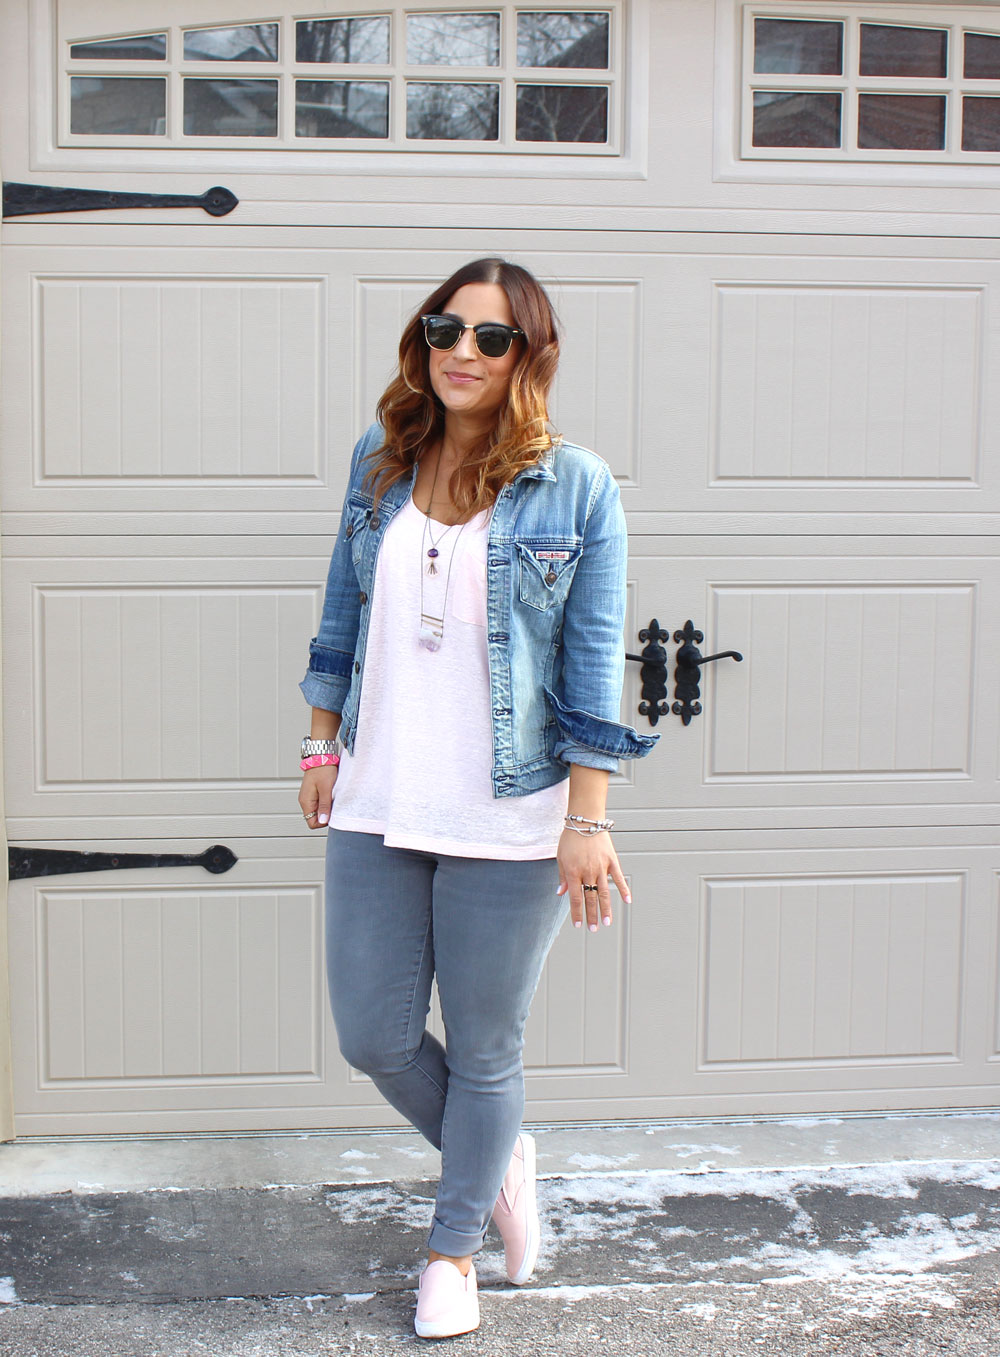 How to wear the Canadian Tuxedo